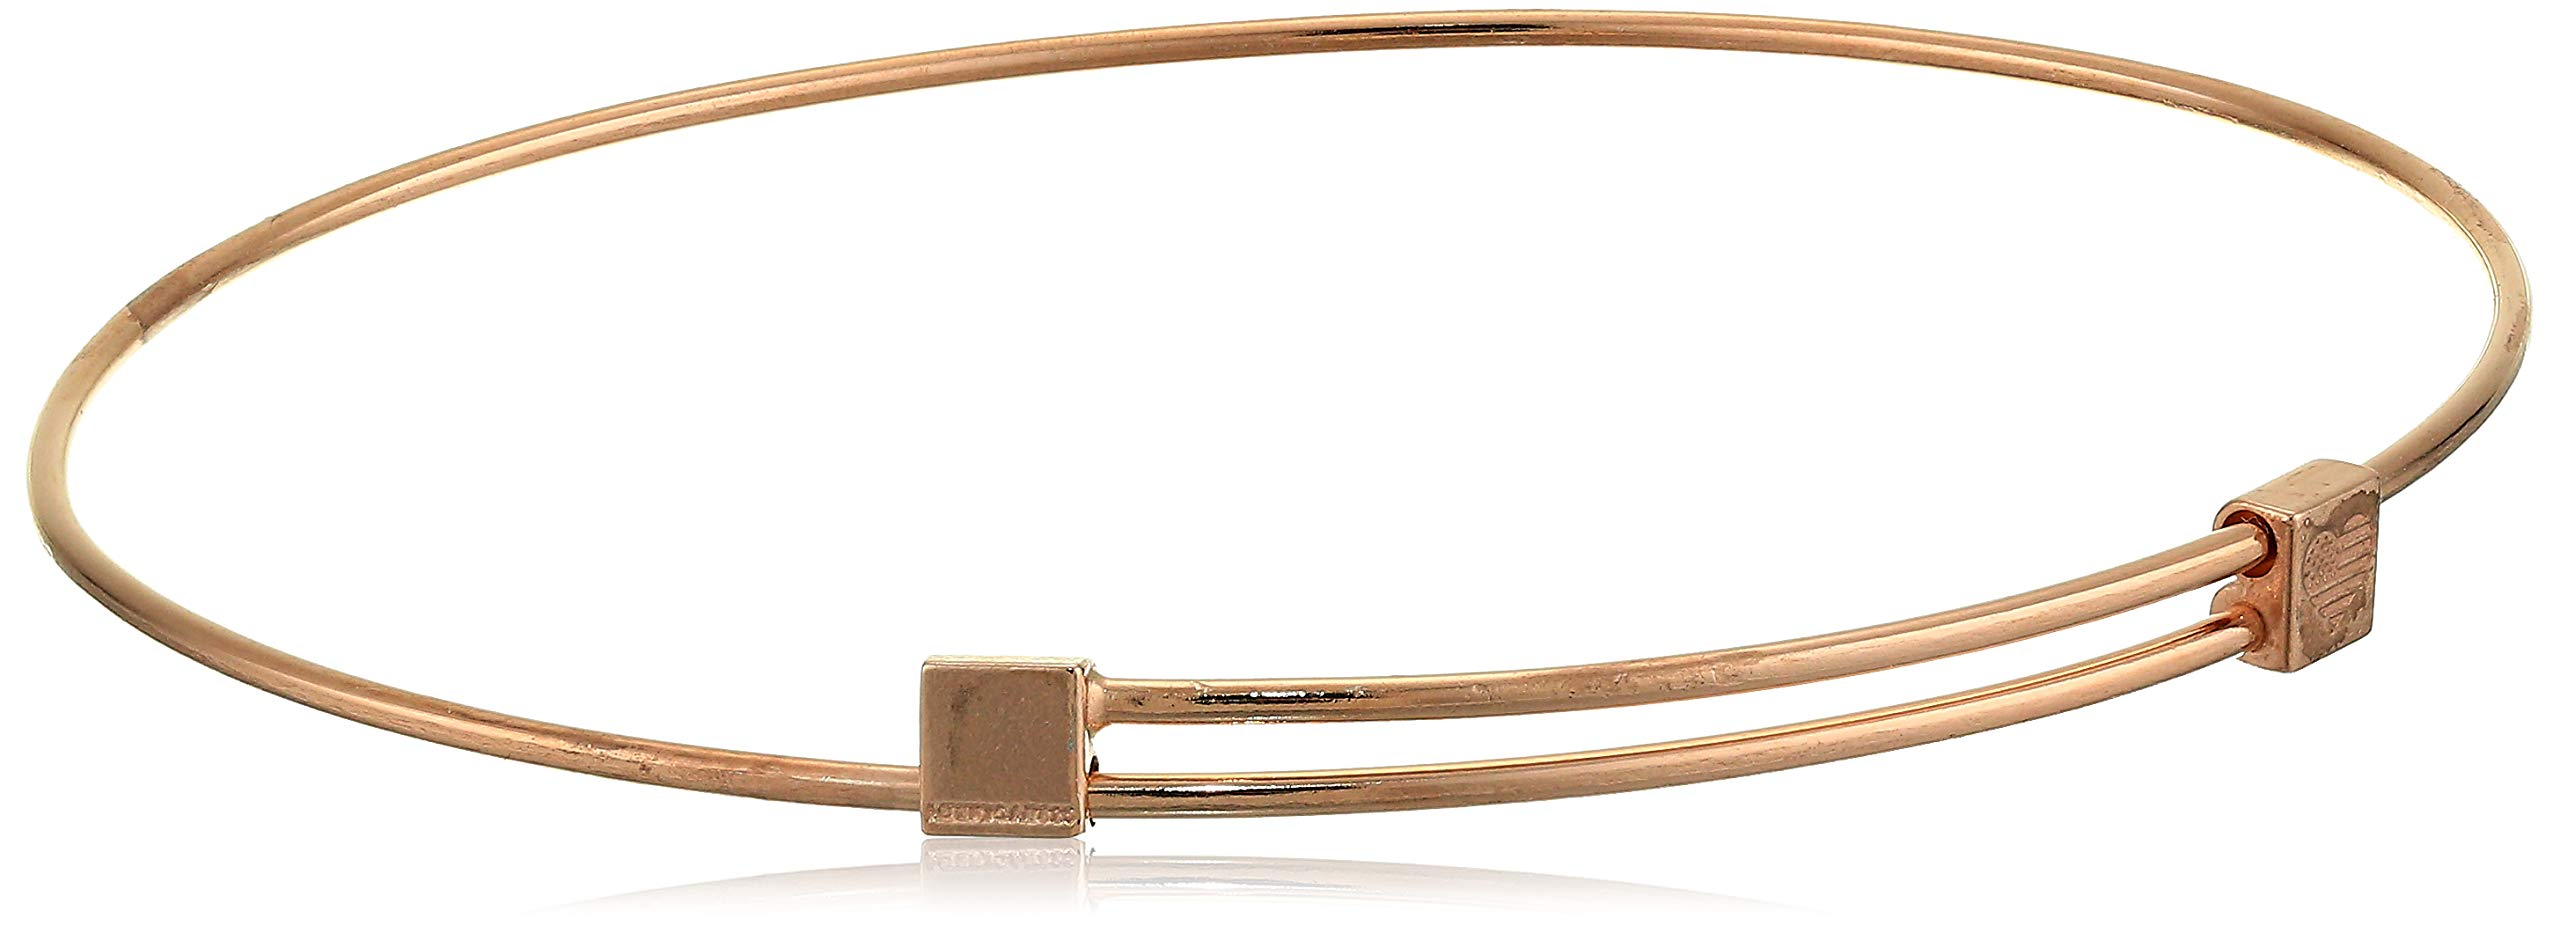 Alex And Ani Replenishment 19 Women's 14Kt Rose Gold Plated EWB